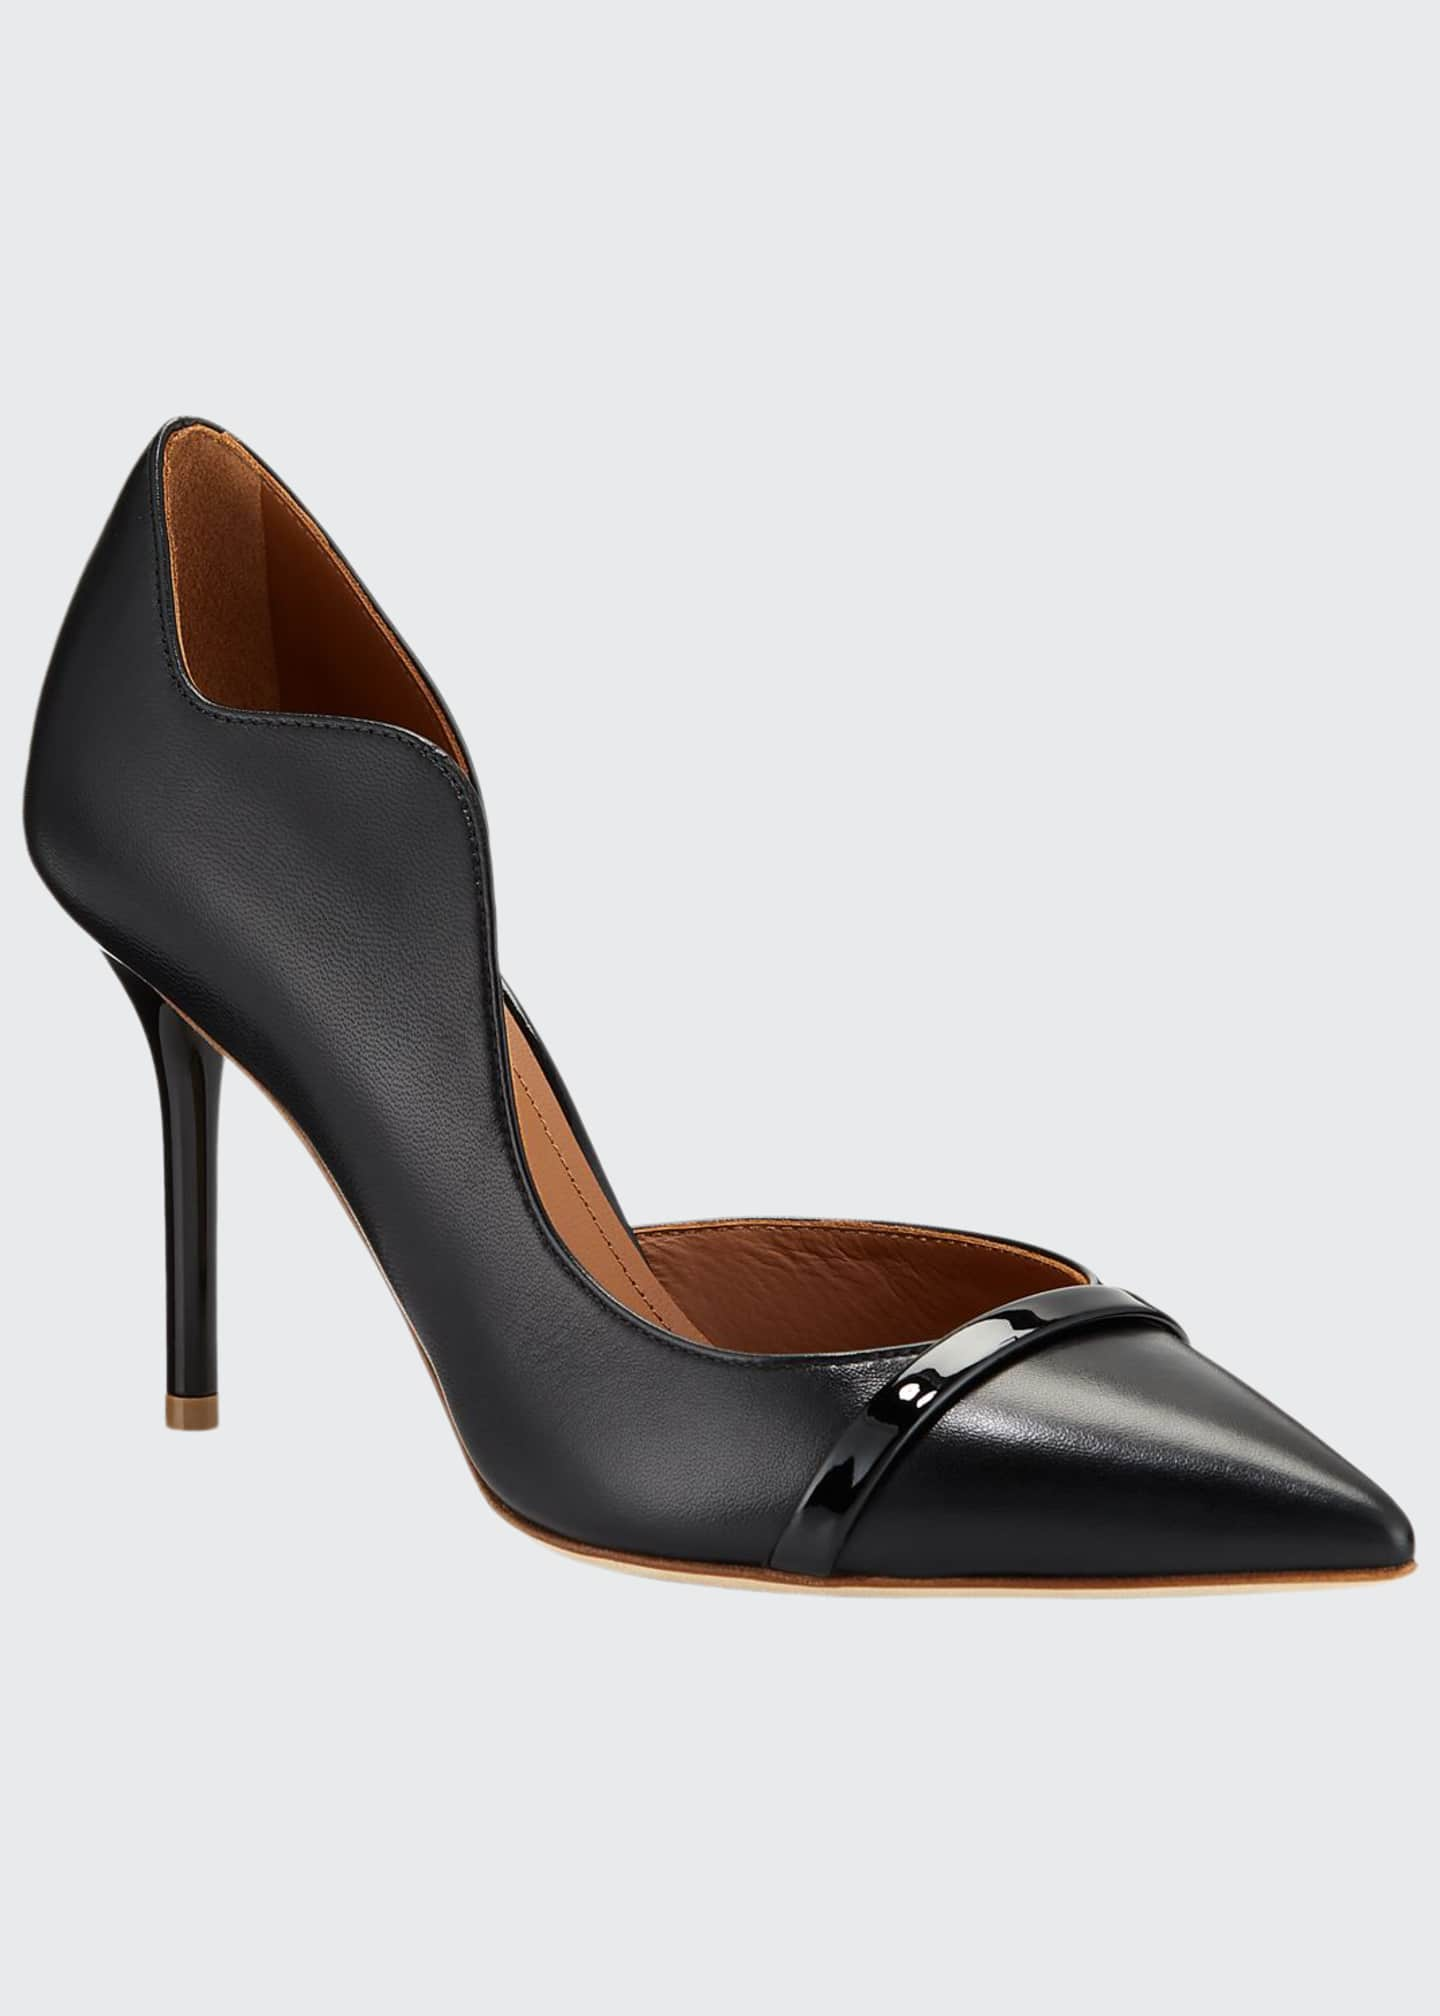 Malone Souliers Morrissey Napa Pointed Pumps